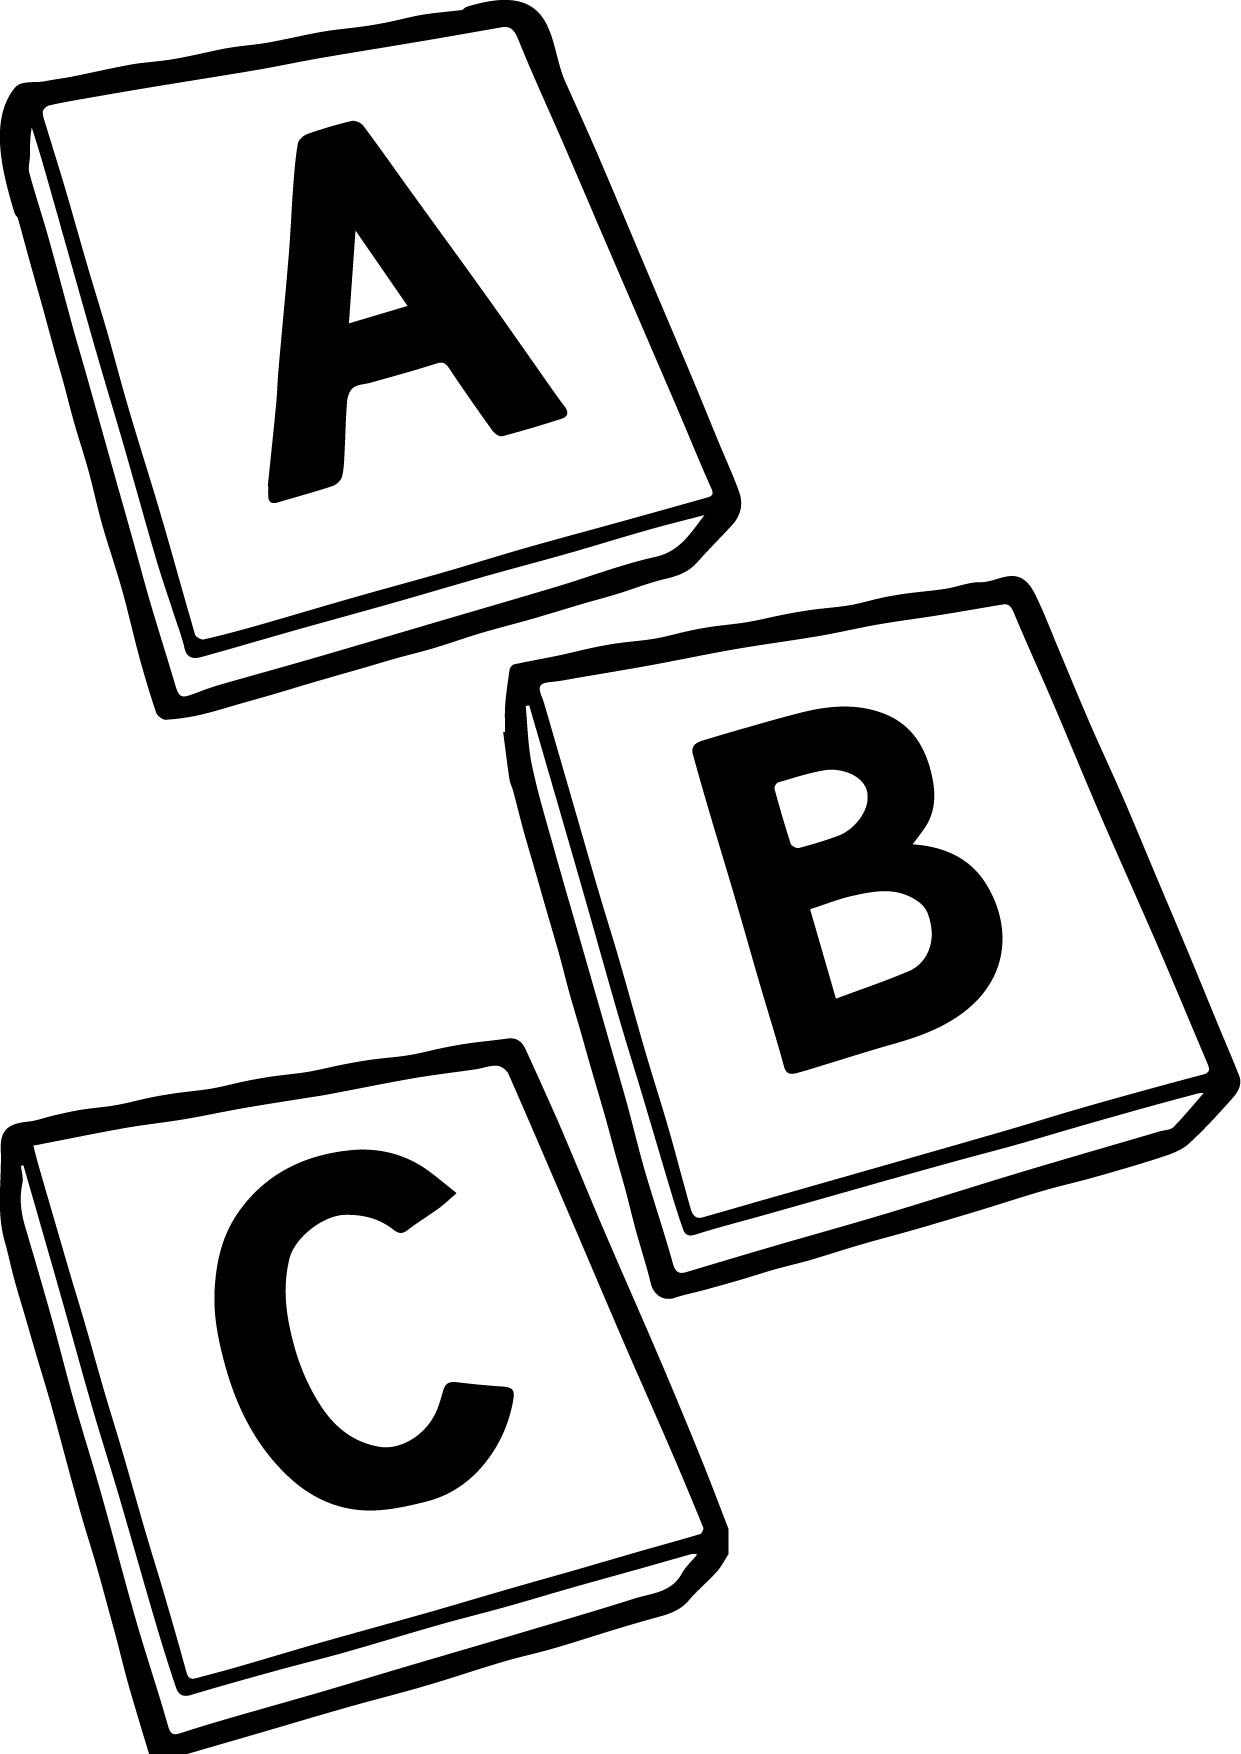 Abc Black And White Coloring Page